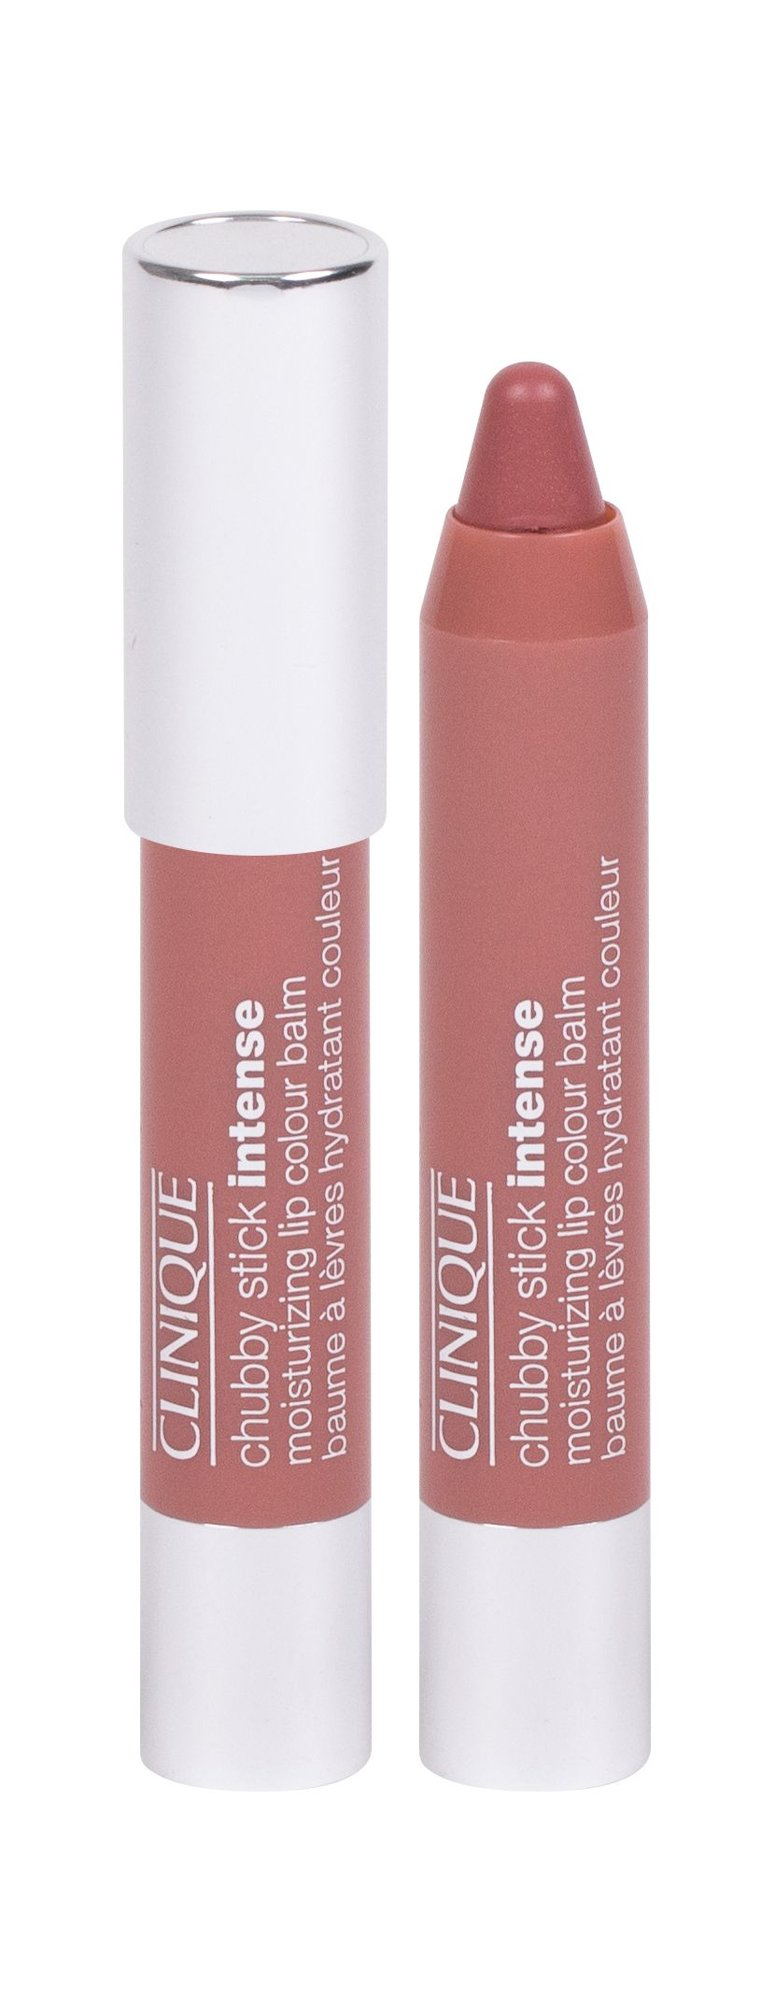 Clinique Chubby Stick Lipstick 3ml 01 Curviest Caramel